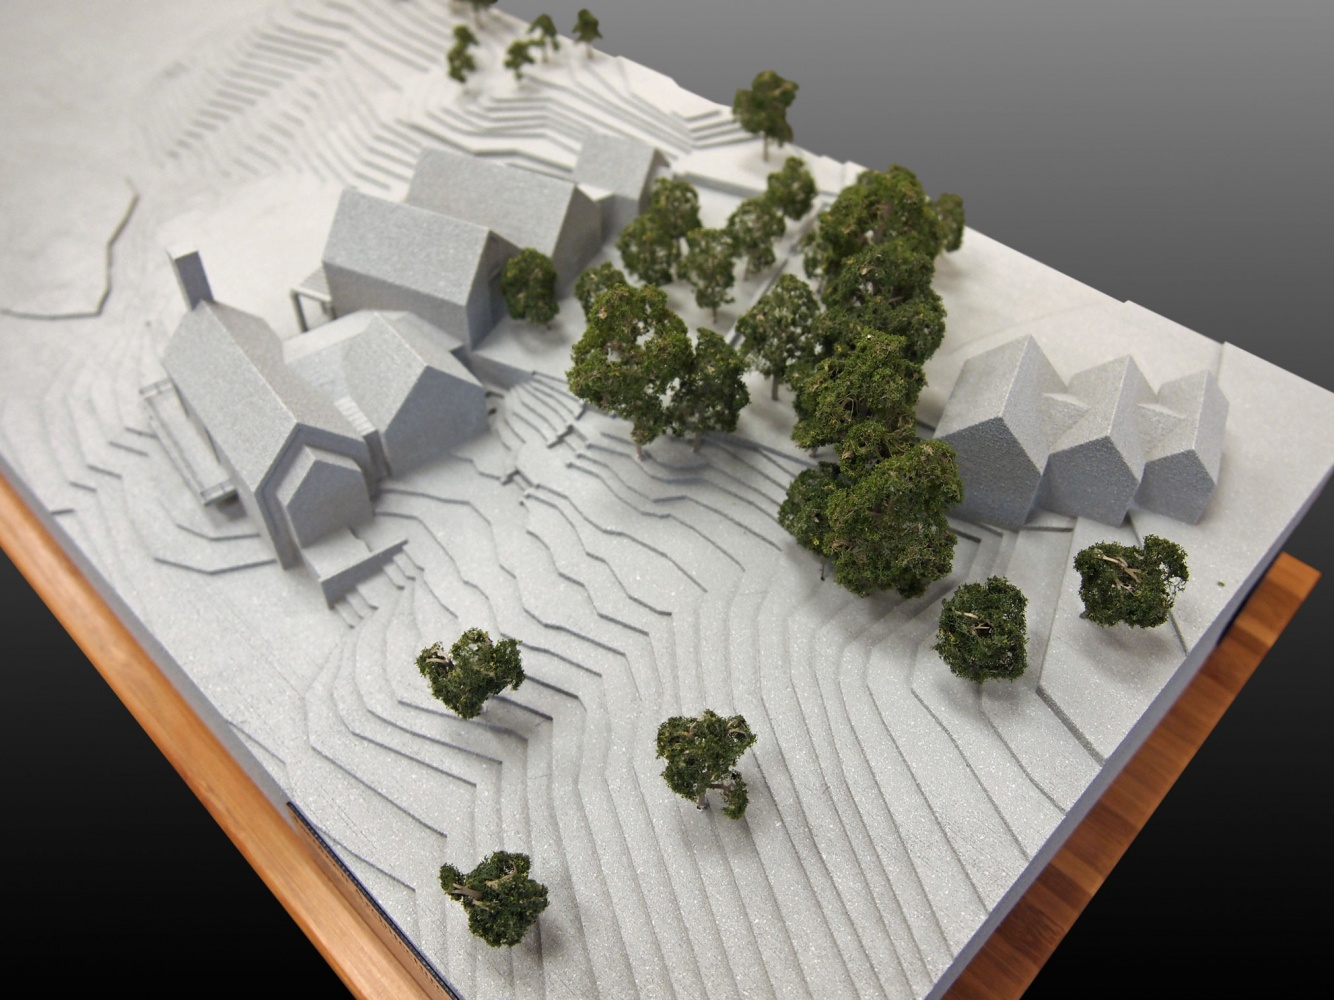 3d printed architectural model painted with trees lgm 3d site